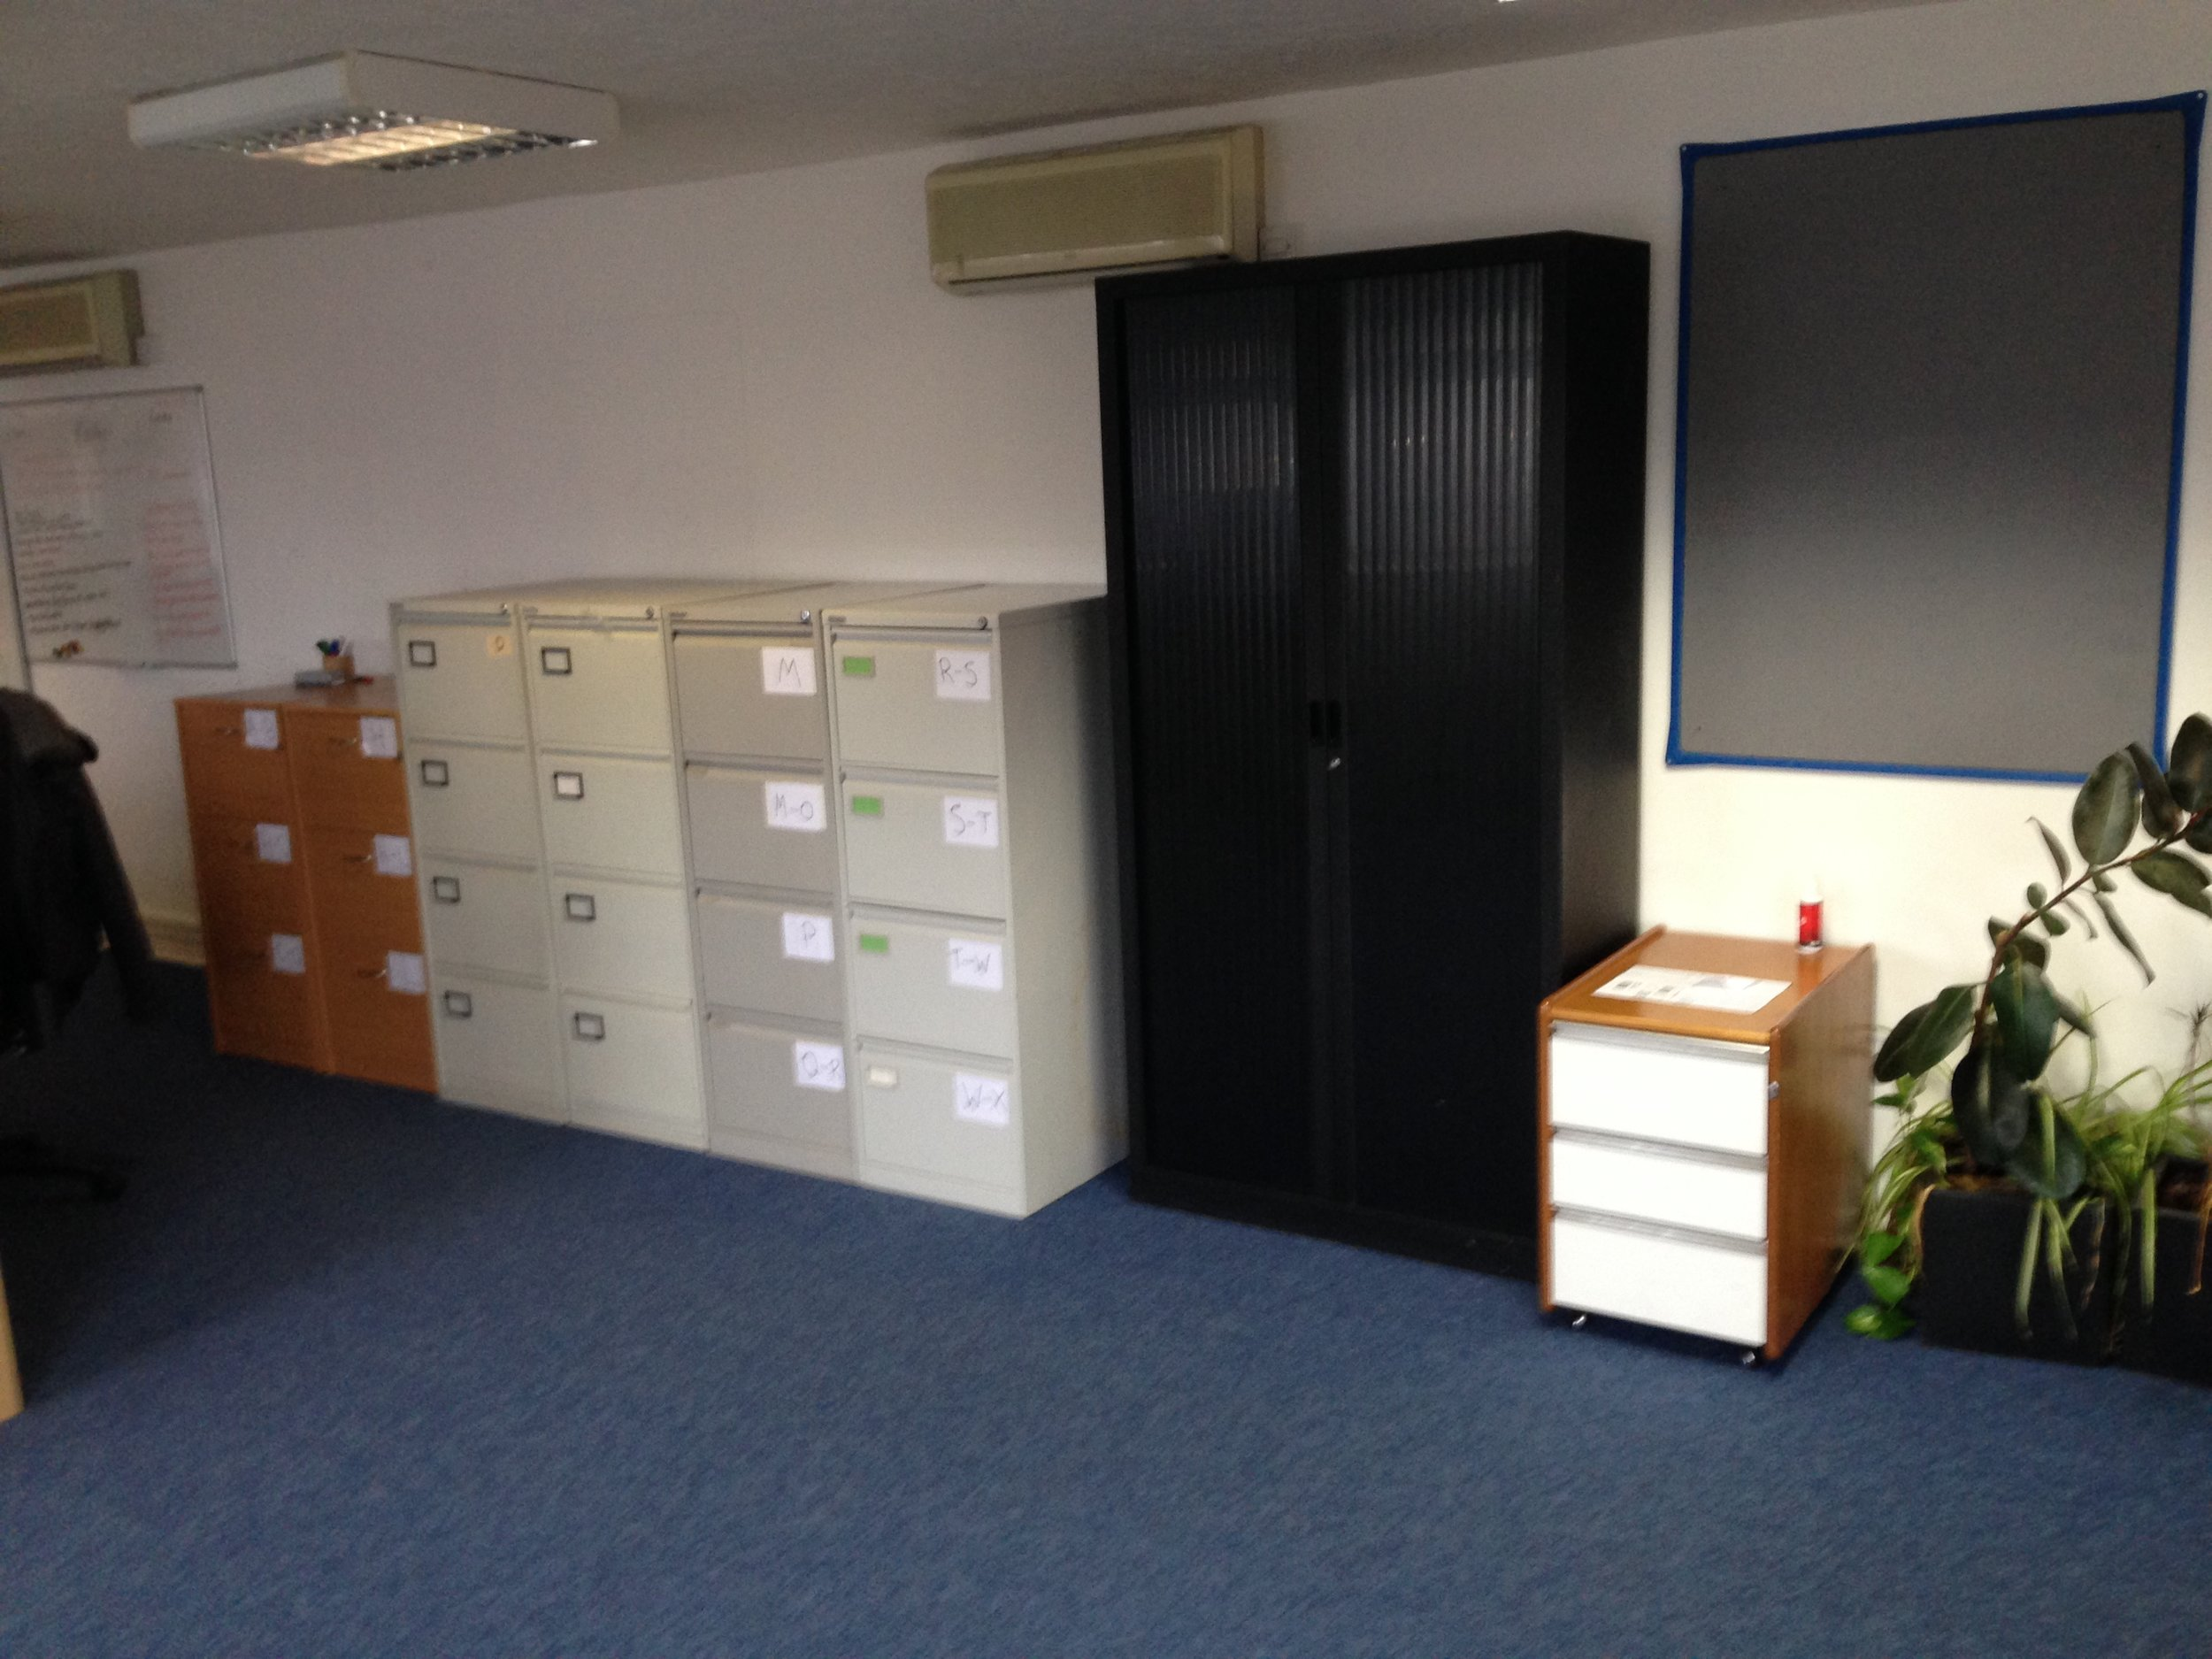 Office remodelling - design and refit - Littlehampton manufacturing sector-11